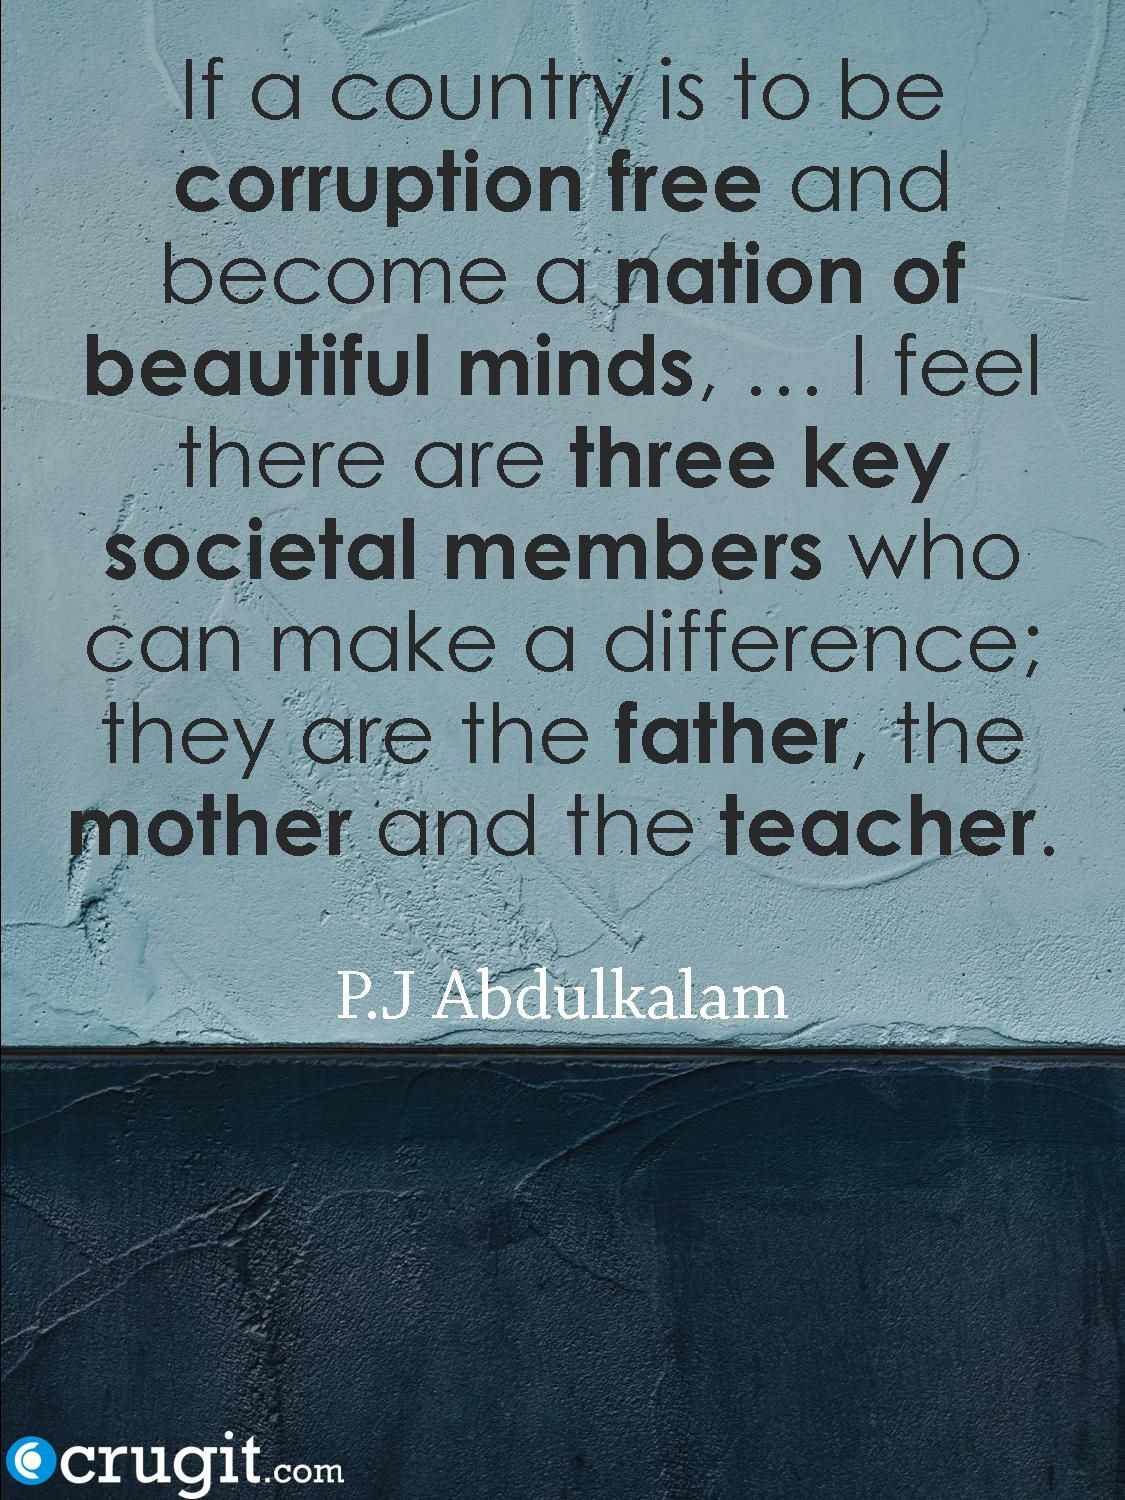 Abdulkalam Quote On Family And Politics Home Quotes And Sayings Family Quotes Quotes